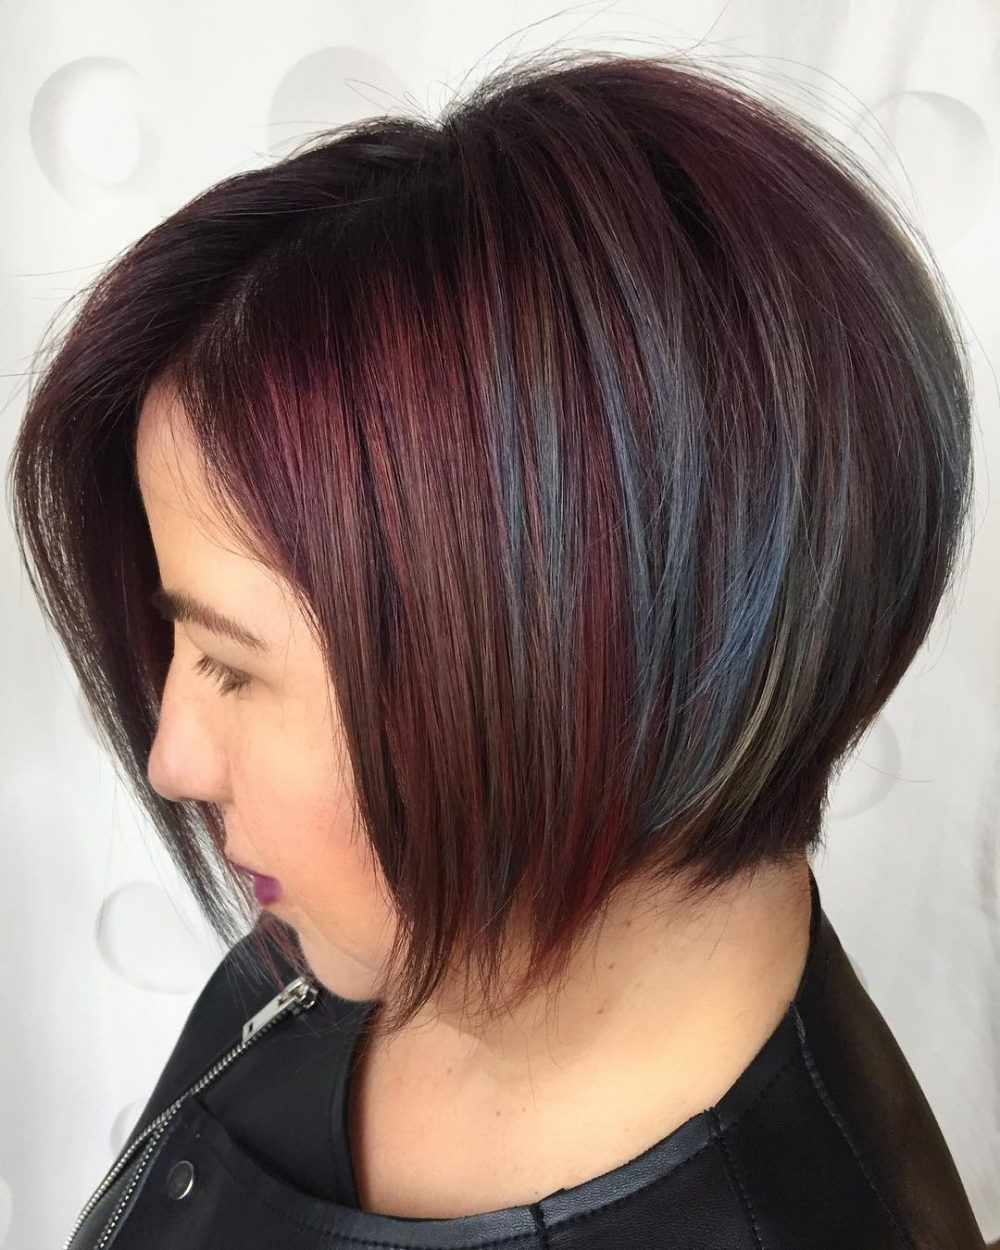 34 Greatest Short Haircuts And Hairstyles For Thick Hair For 2018 Intended For Short Hairstyles For Very Thick Hair (View 13 of 25)